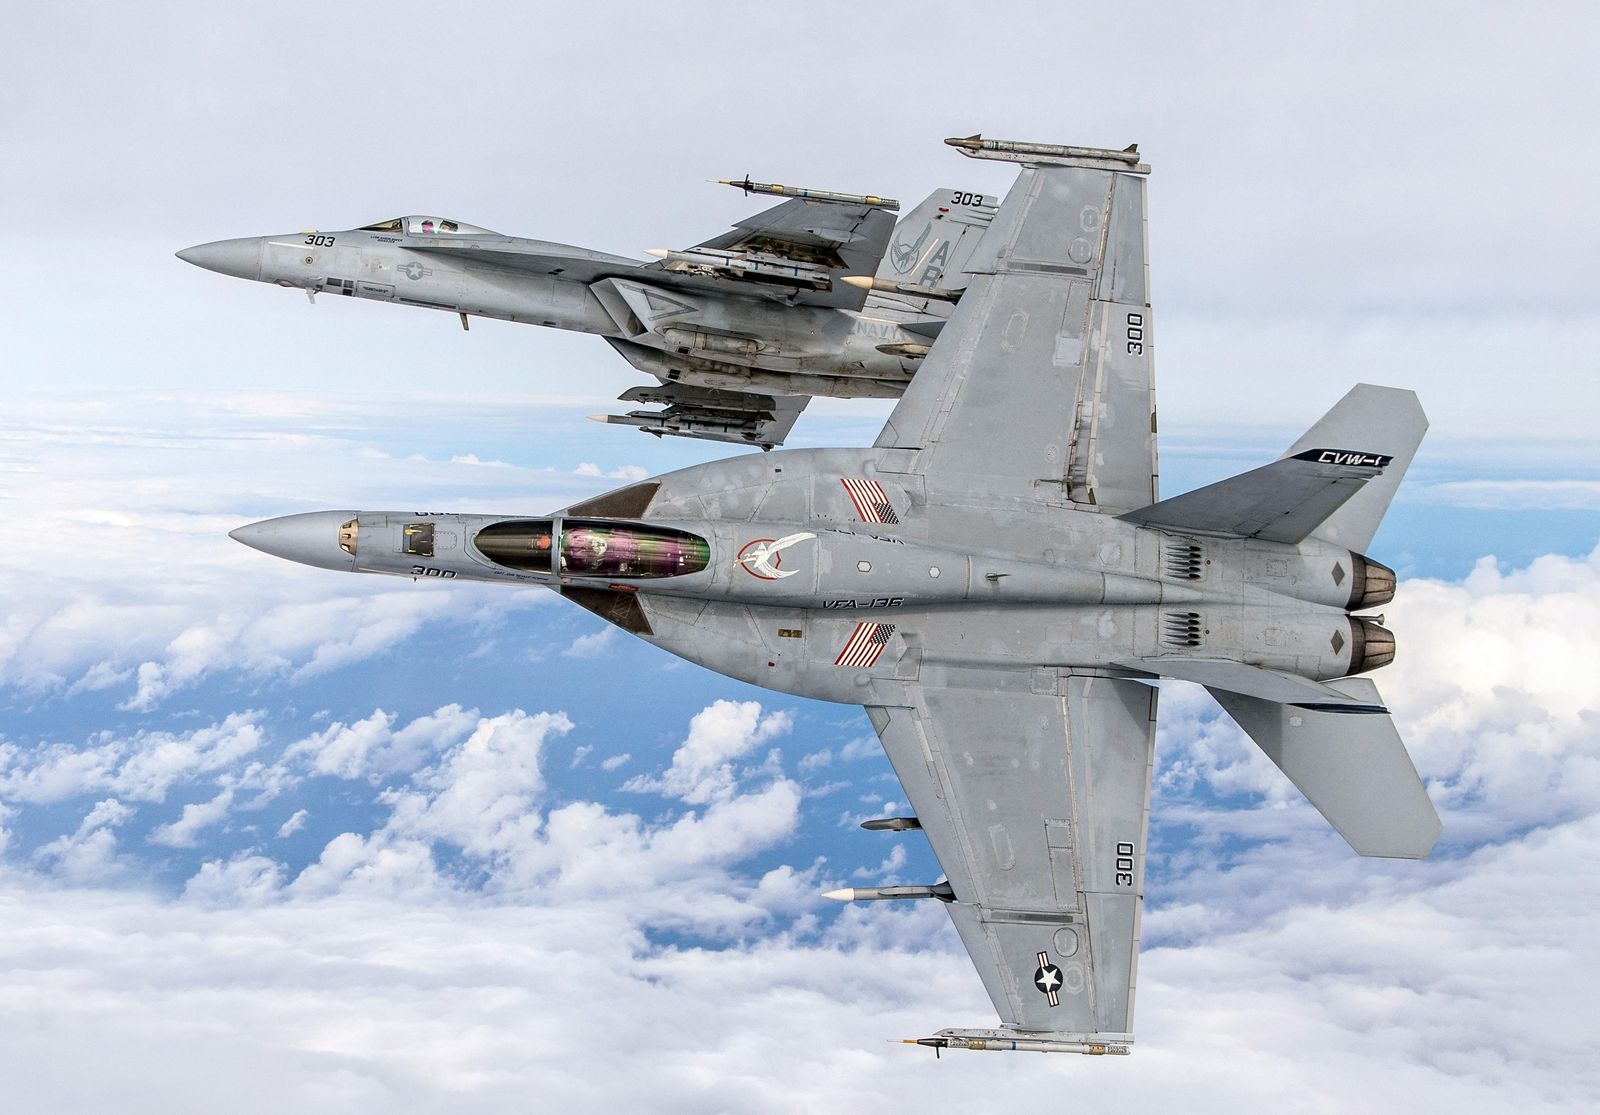 The Navy's F/A-18 Super Hornet Gets Even More Super